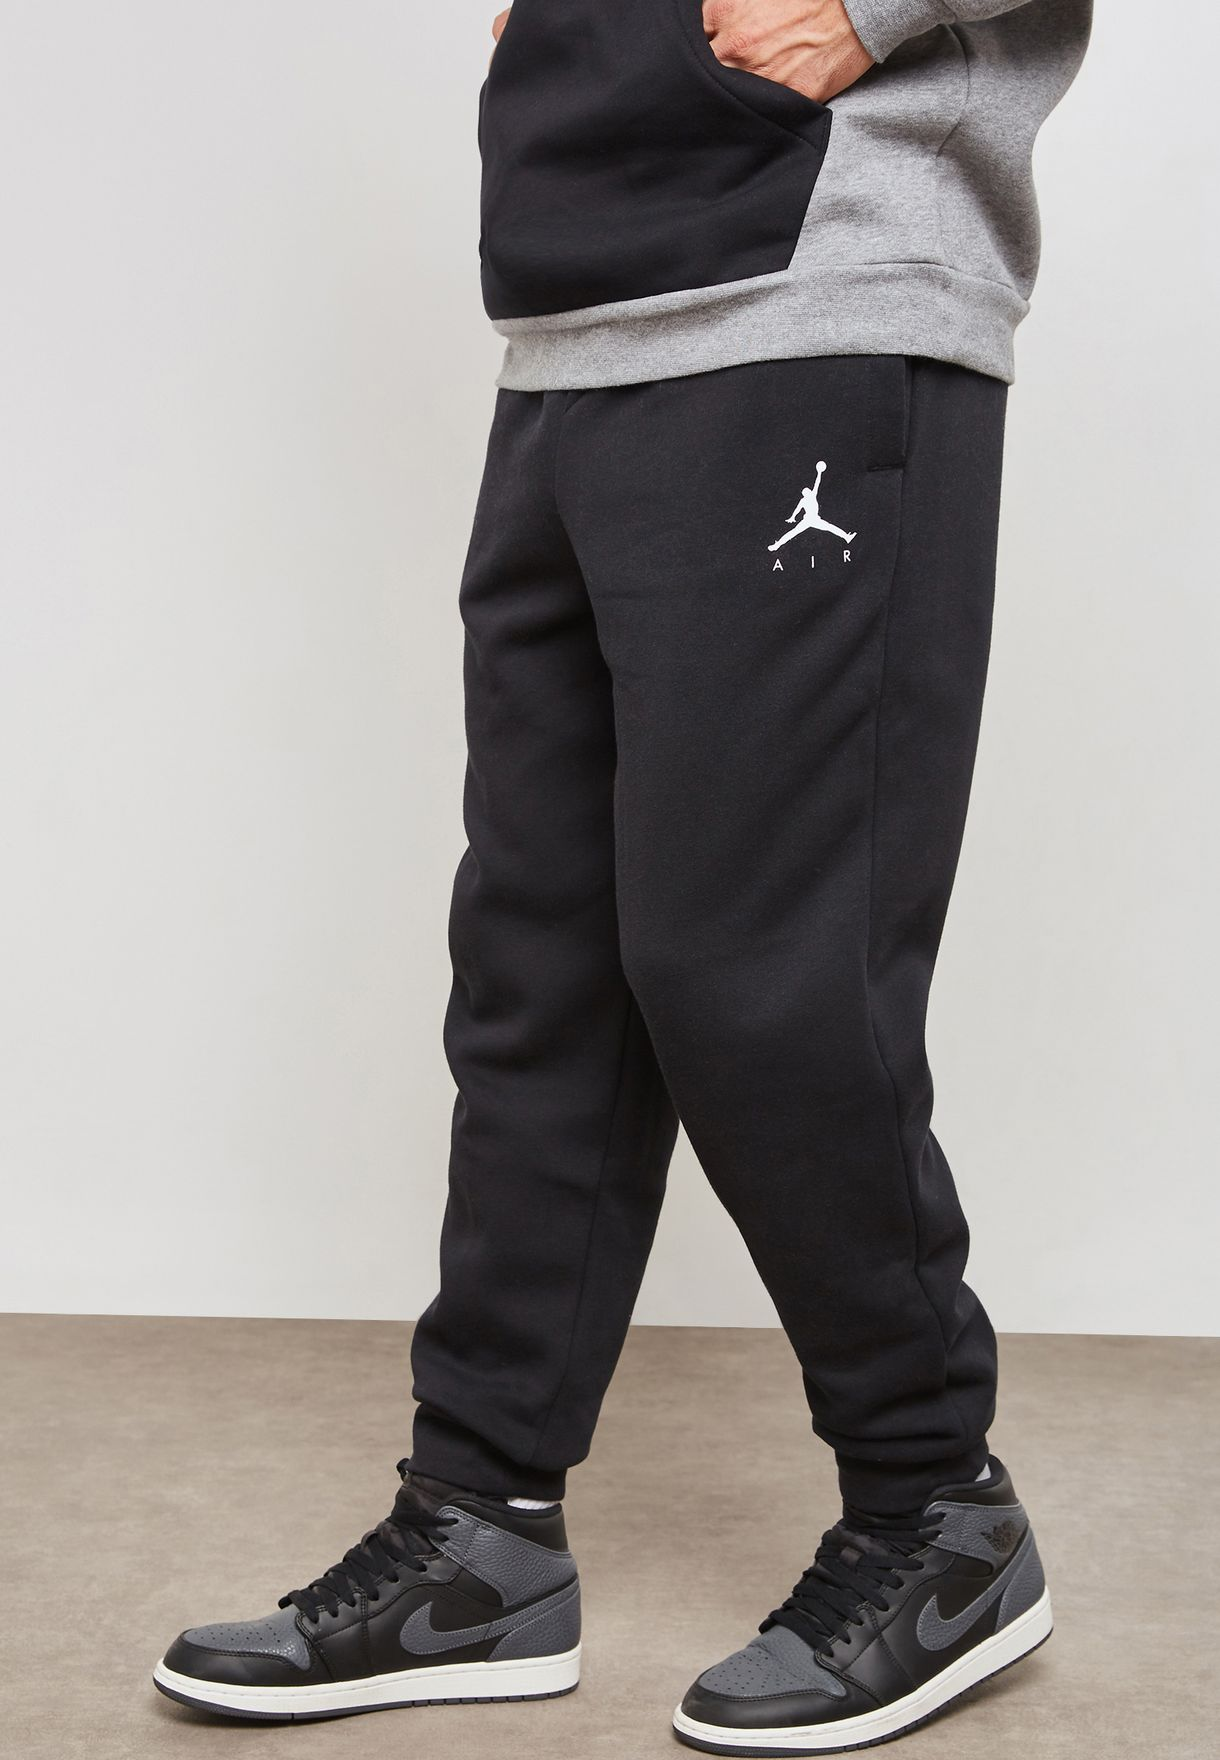 ac71df88296e93 Shop Nike black Jordan Jumpman Fleece Sweatpants 940172-010 for Men ...